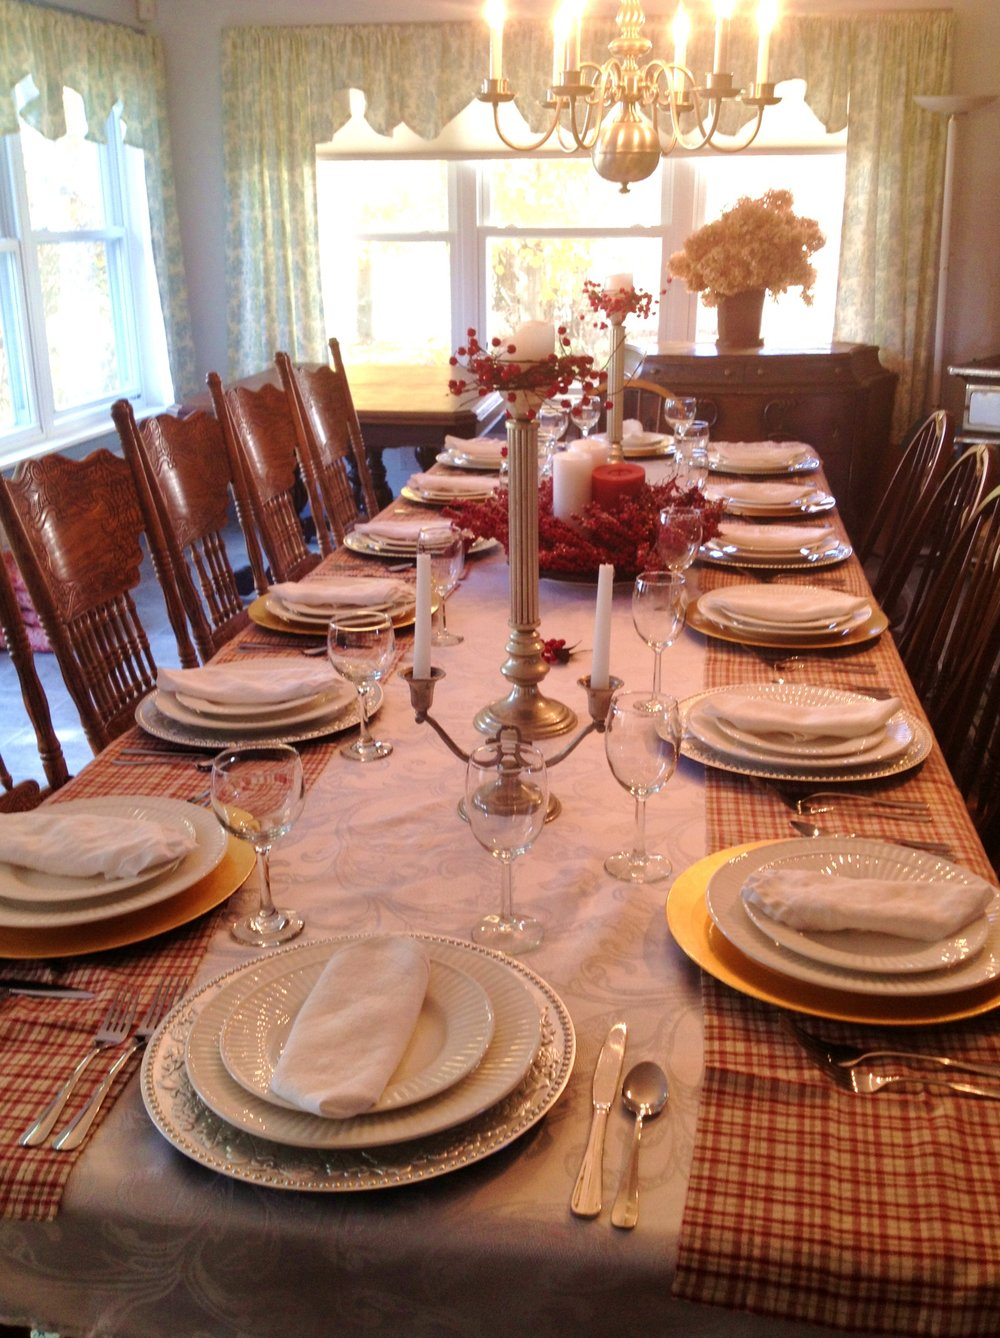 FARMHOUSE DINING ROOM TABLE.jpg